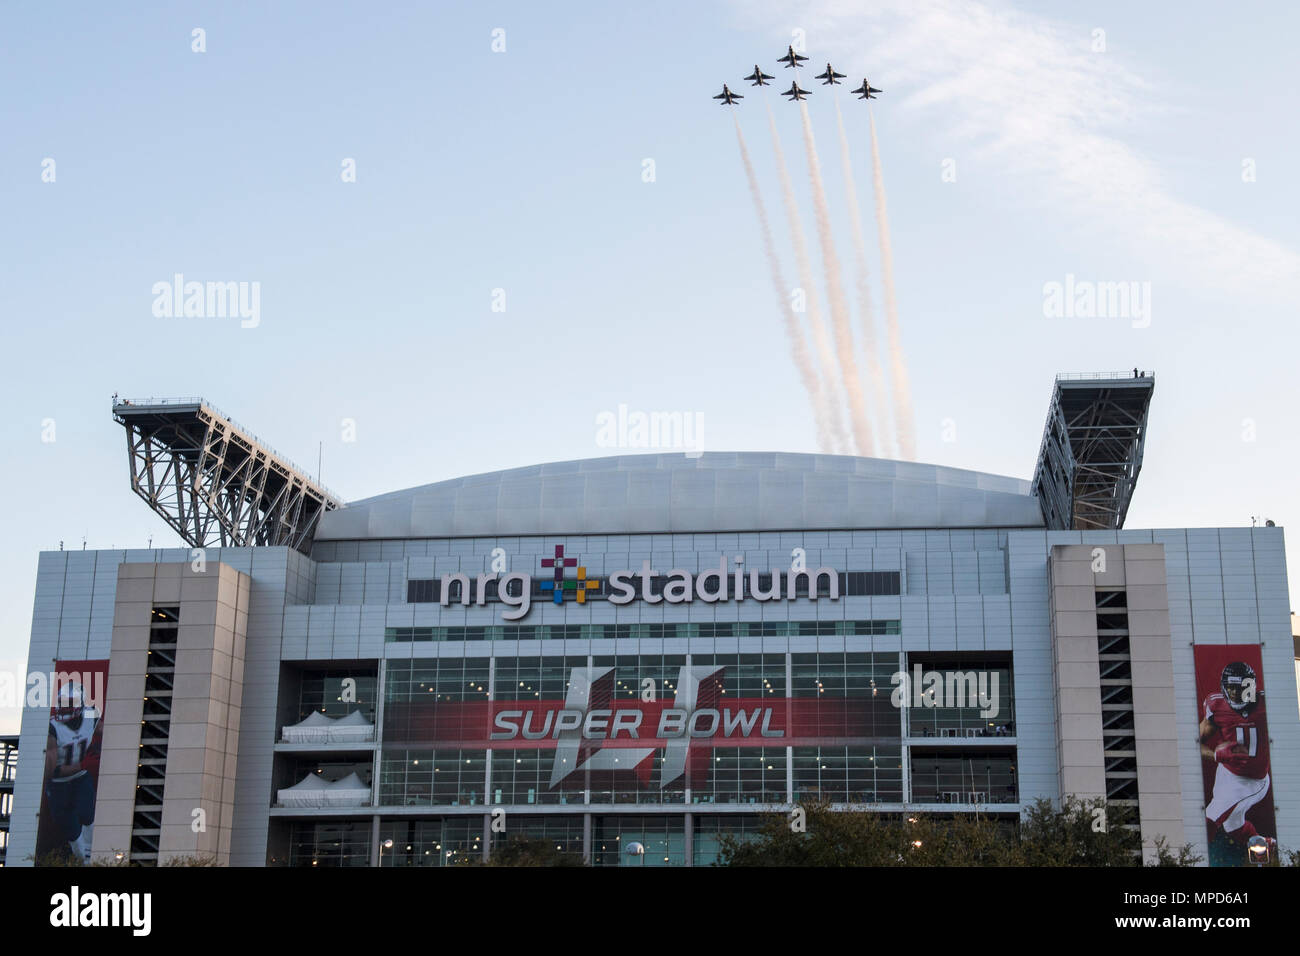 The United States Air Force Thunderbirds Perform The Flyover Of Super Bowl Li In Houston Texas Feb 5 2017 U S Air Force Photo By Tech Sgt Christopher Boitz Stock Photo Alamy